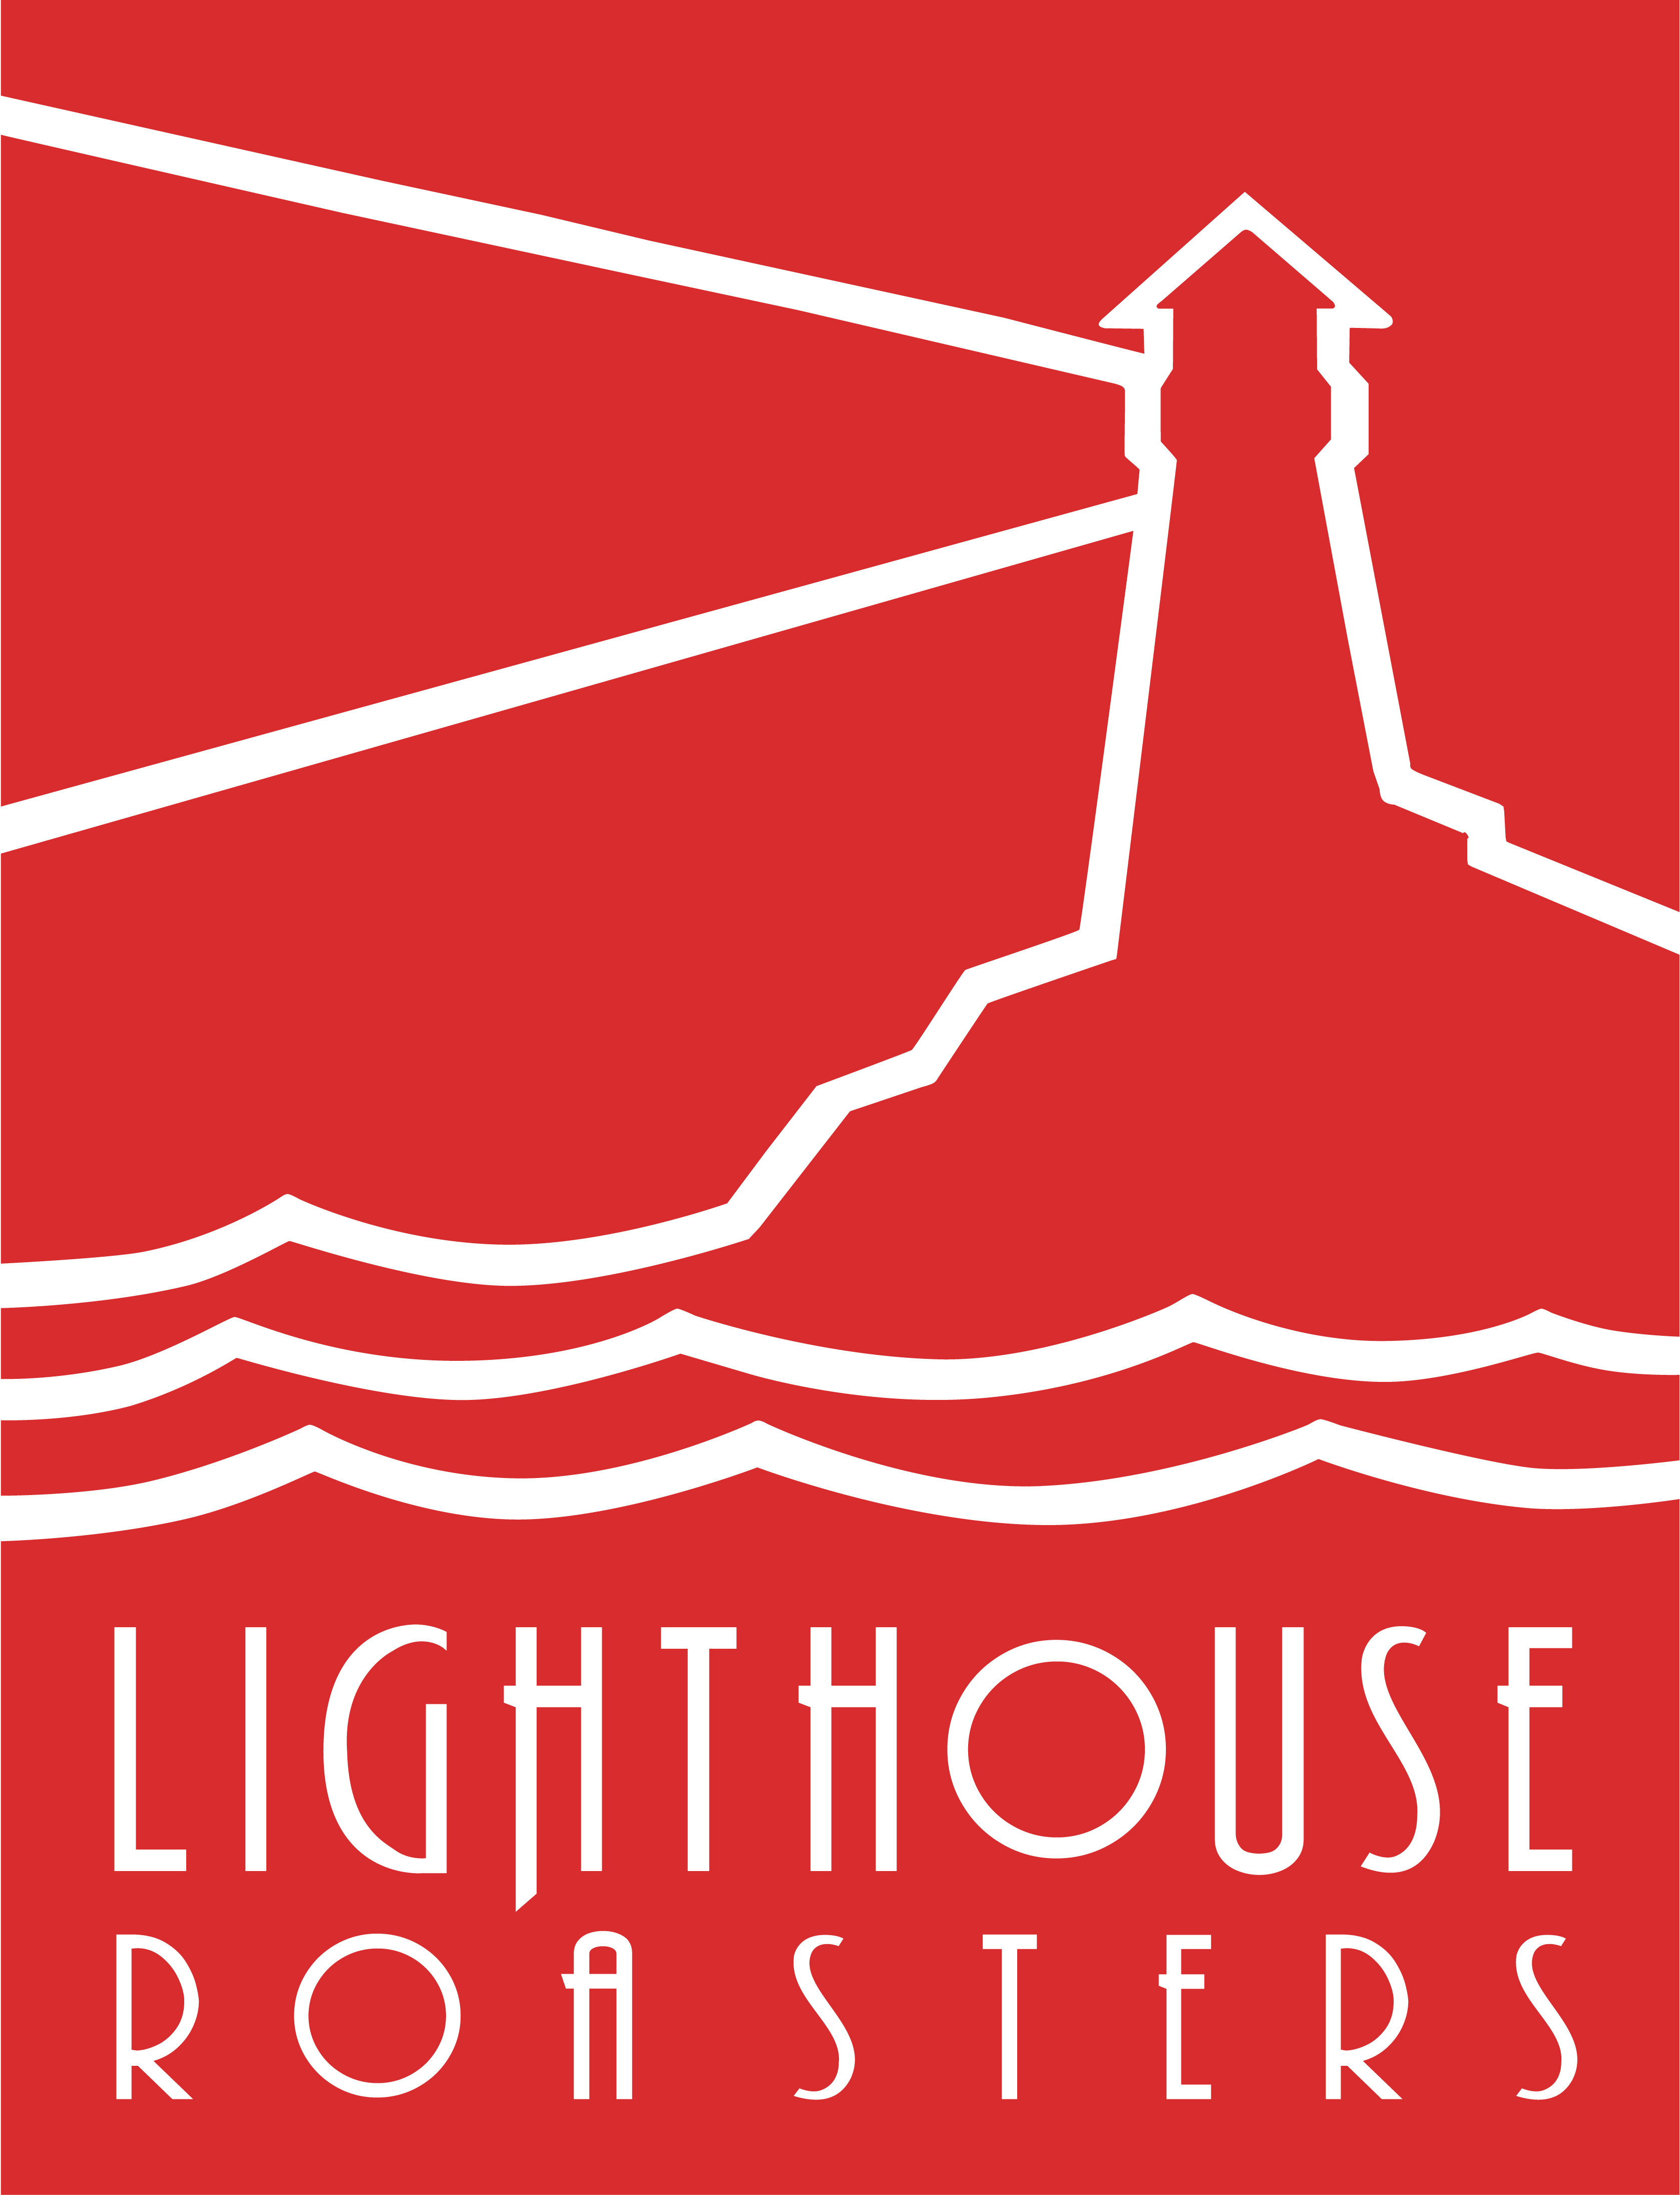 Lighthouse Roasters at CoffeeCon Seattle 2018